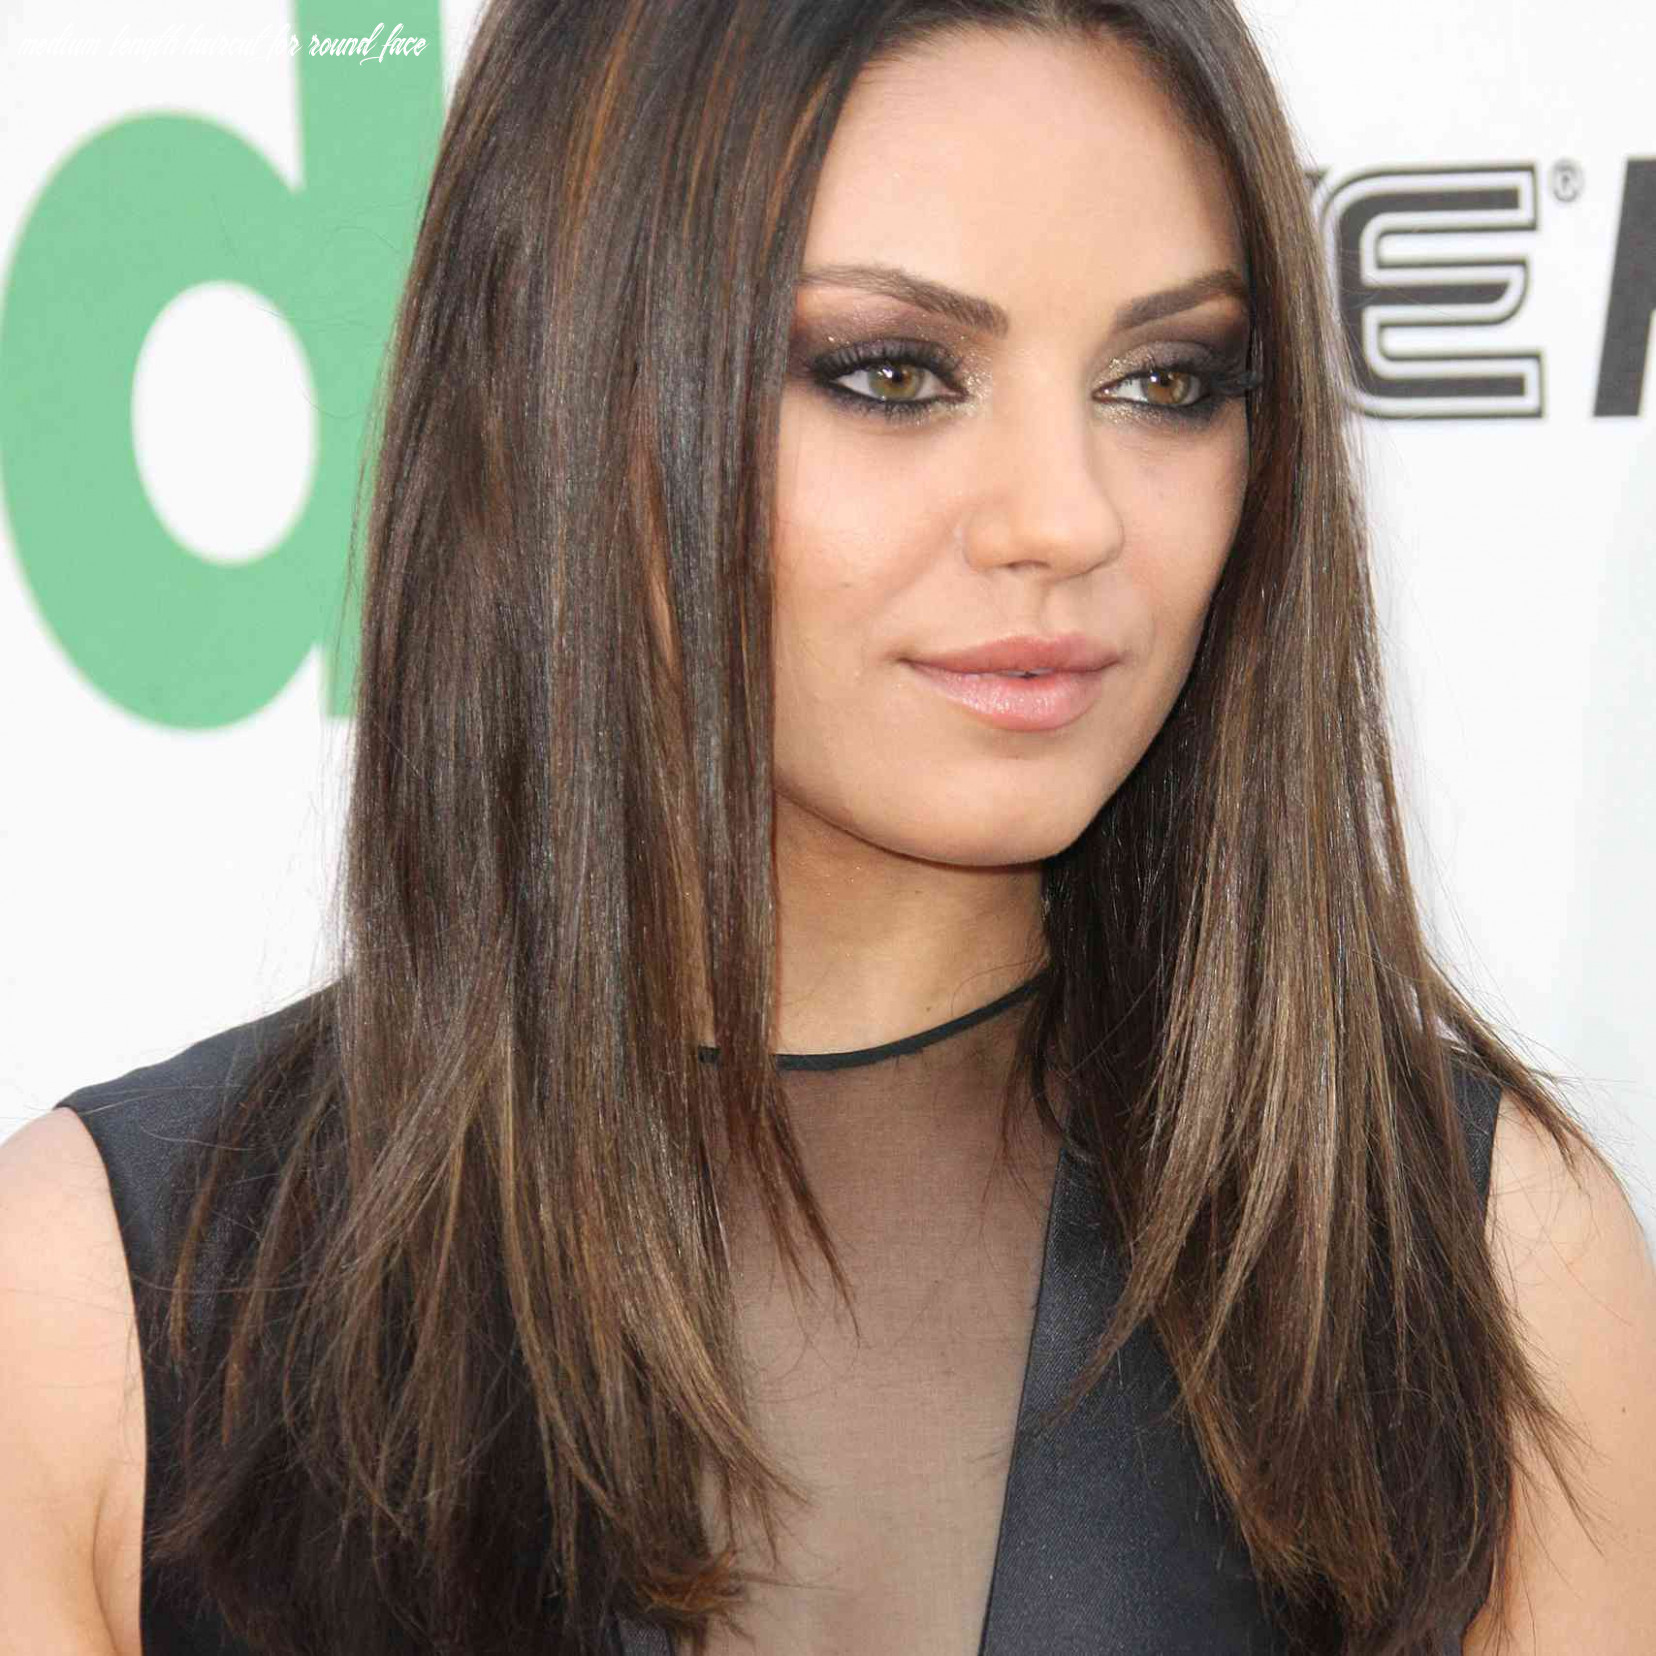 10 Flattering Hairstyles for Round Faces